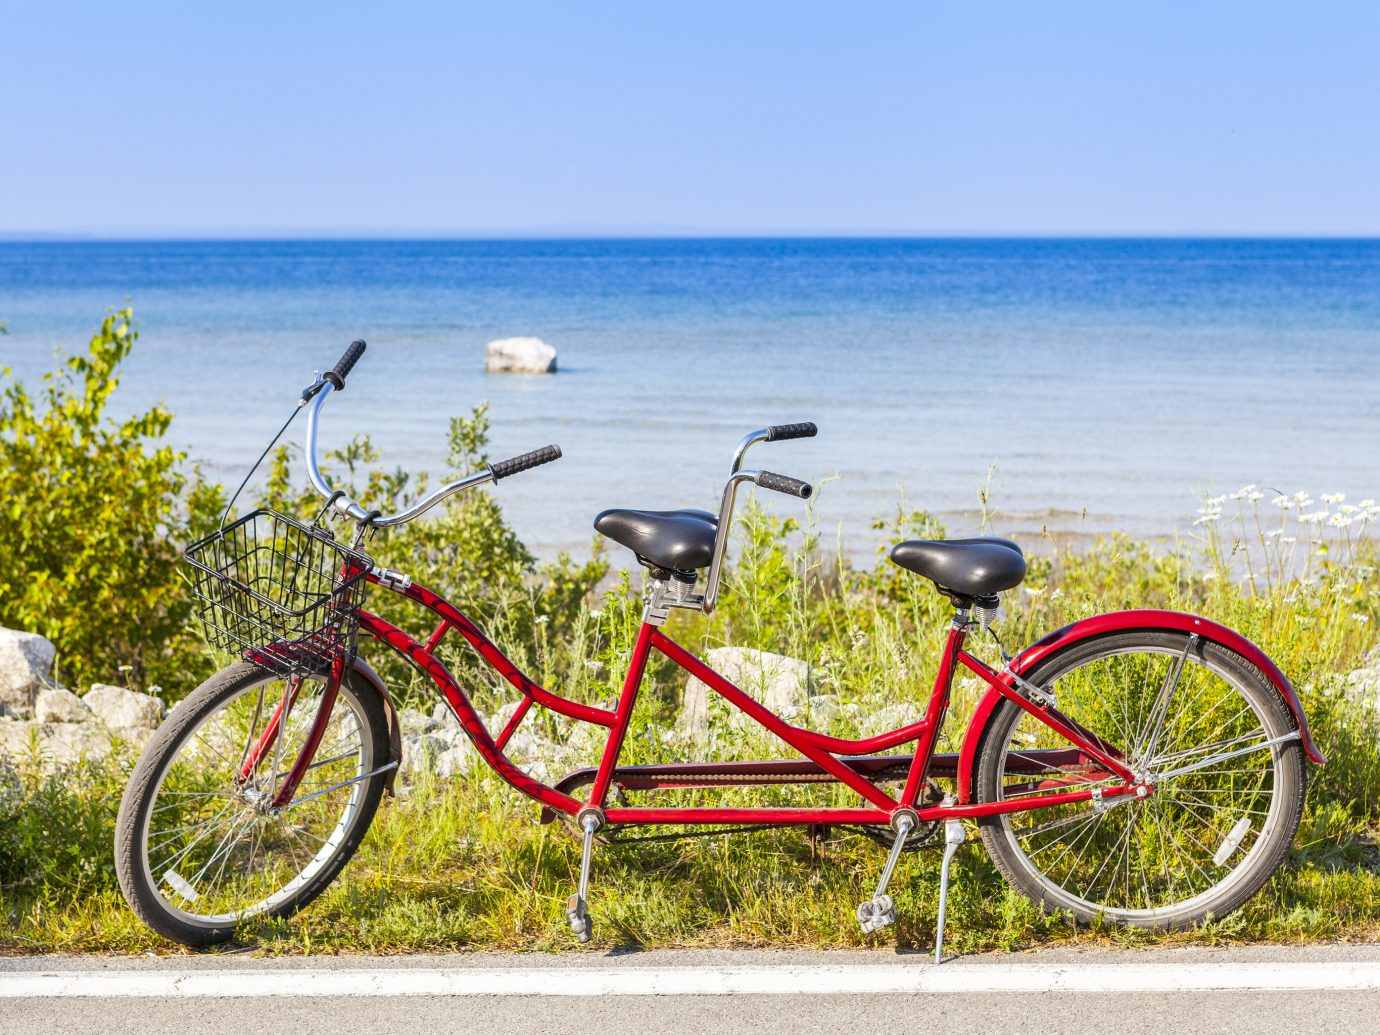 Trip Ideas outdoor sky bicycle water road bicycle vehicle parked leisure transport leaning racing bicycle wheel sports equipment Lake railing overlooking